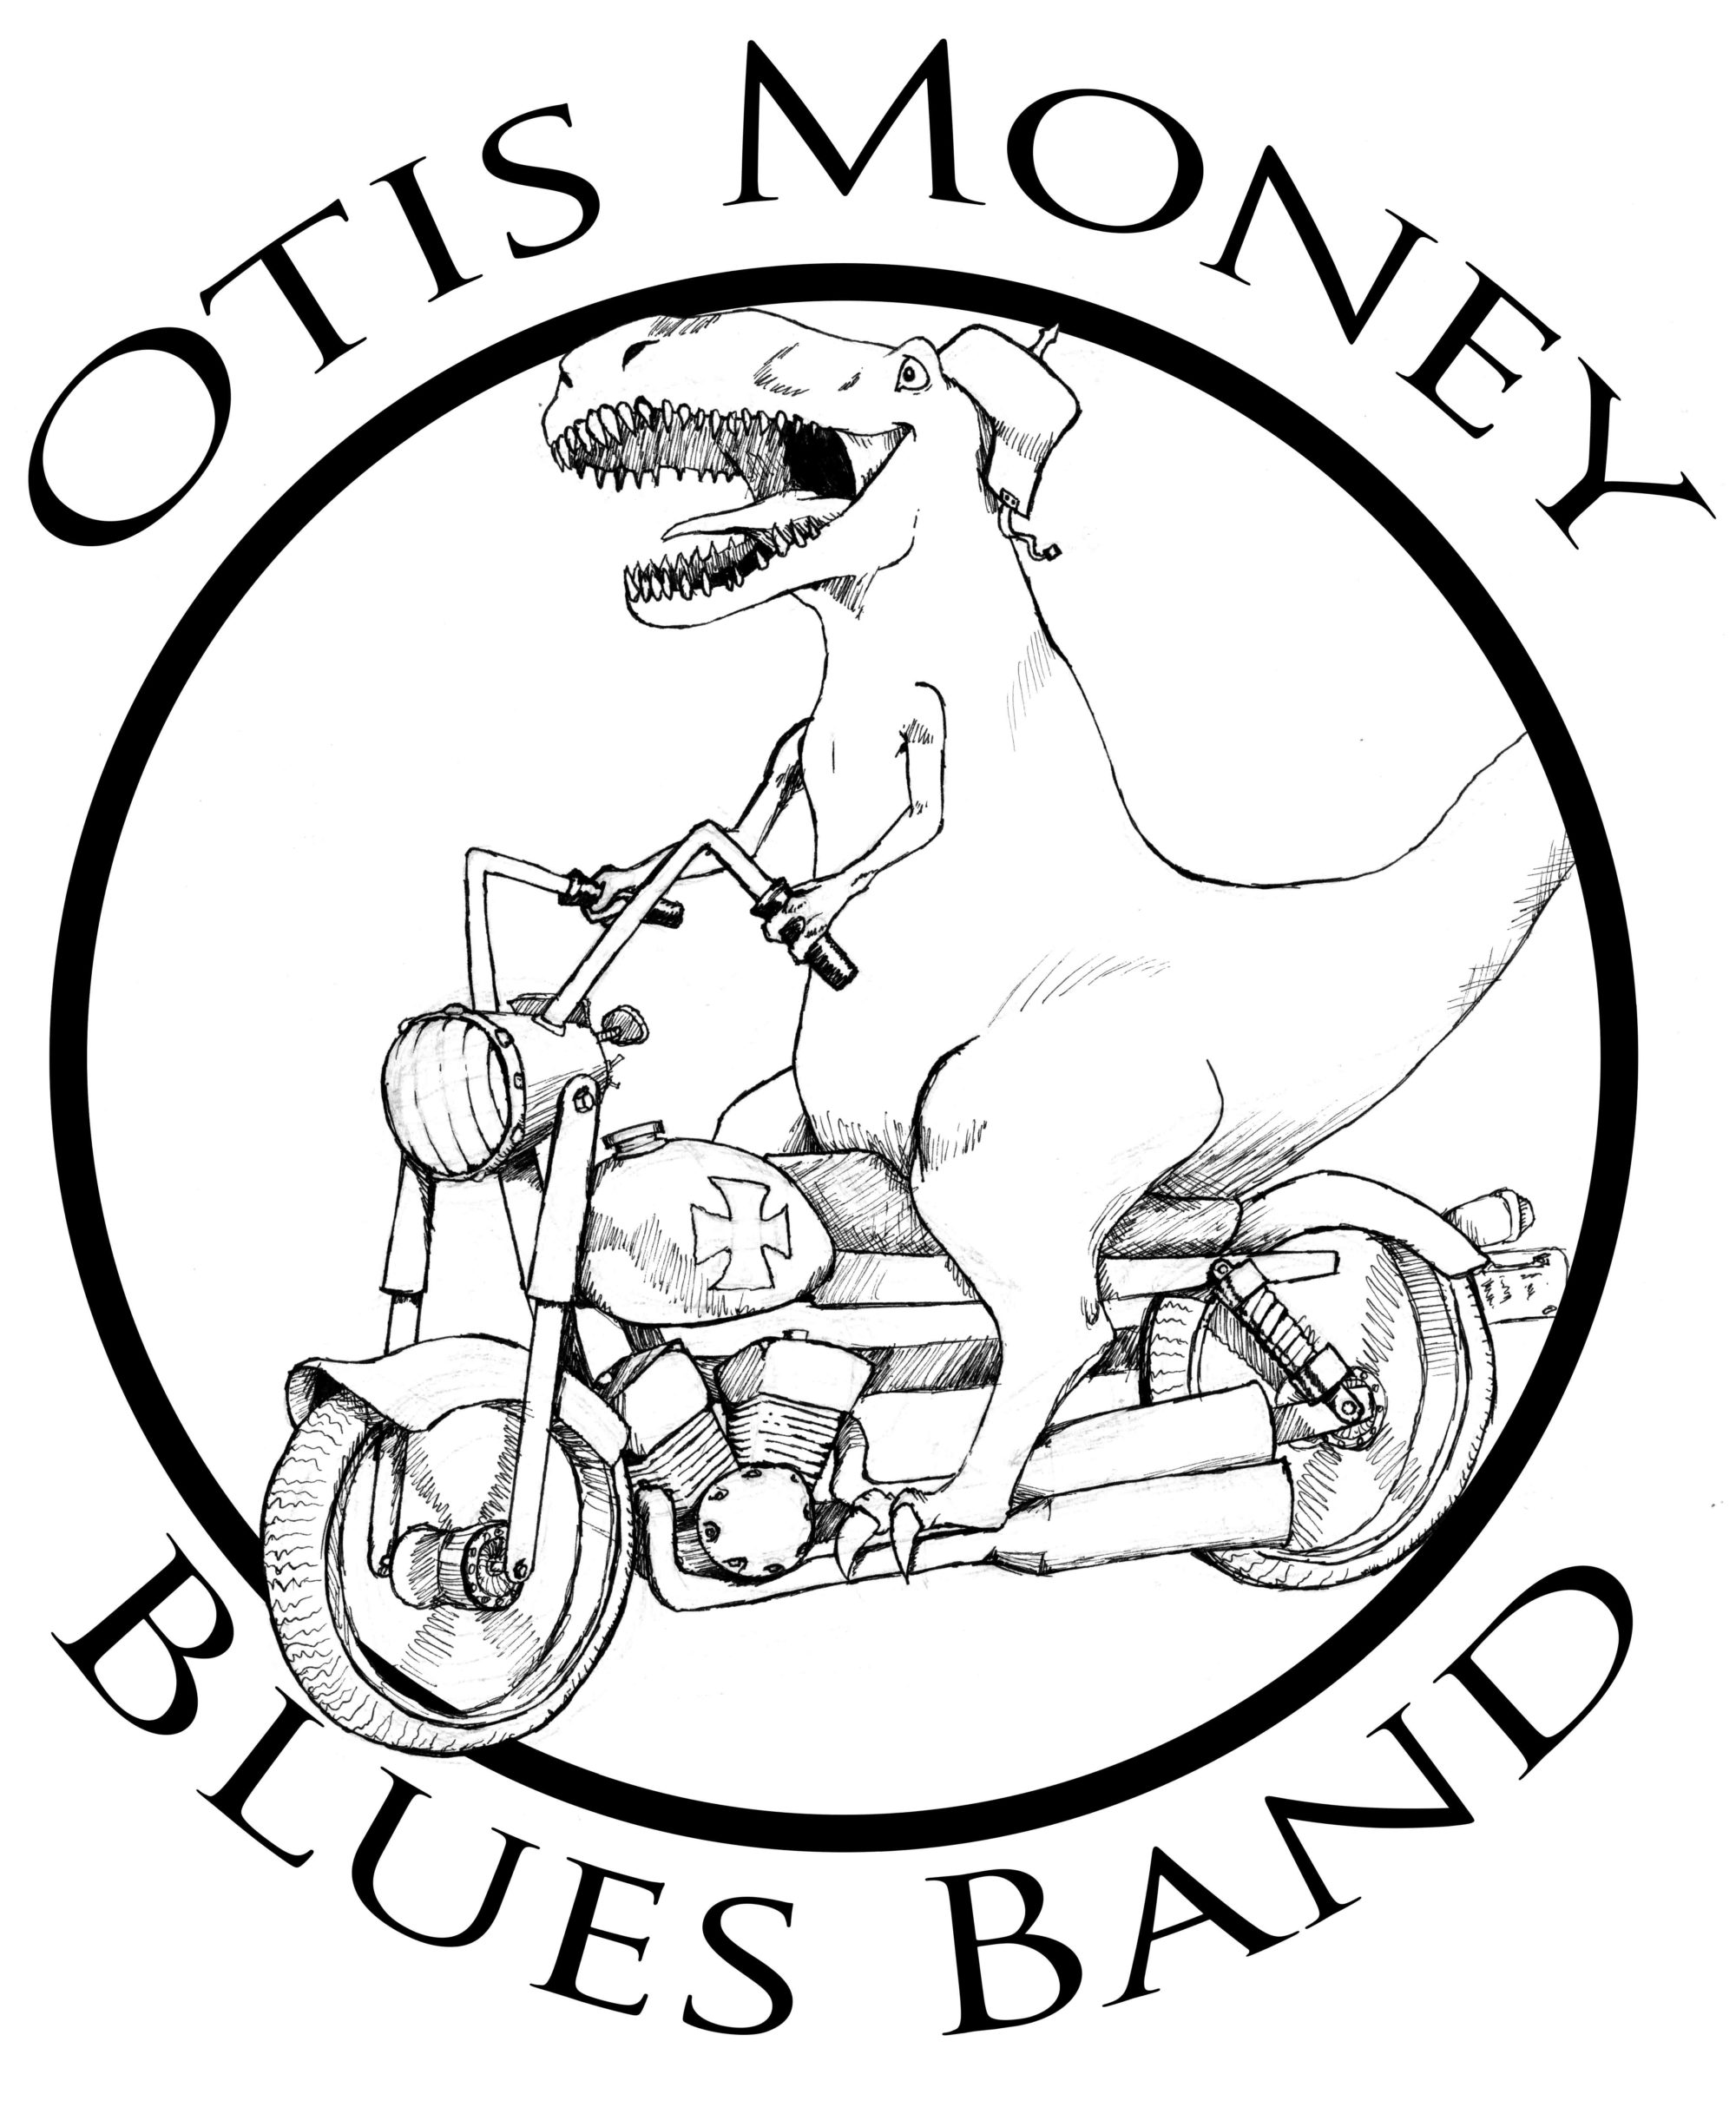 Otis Money